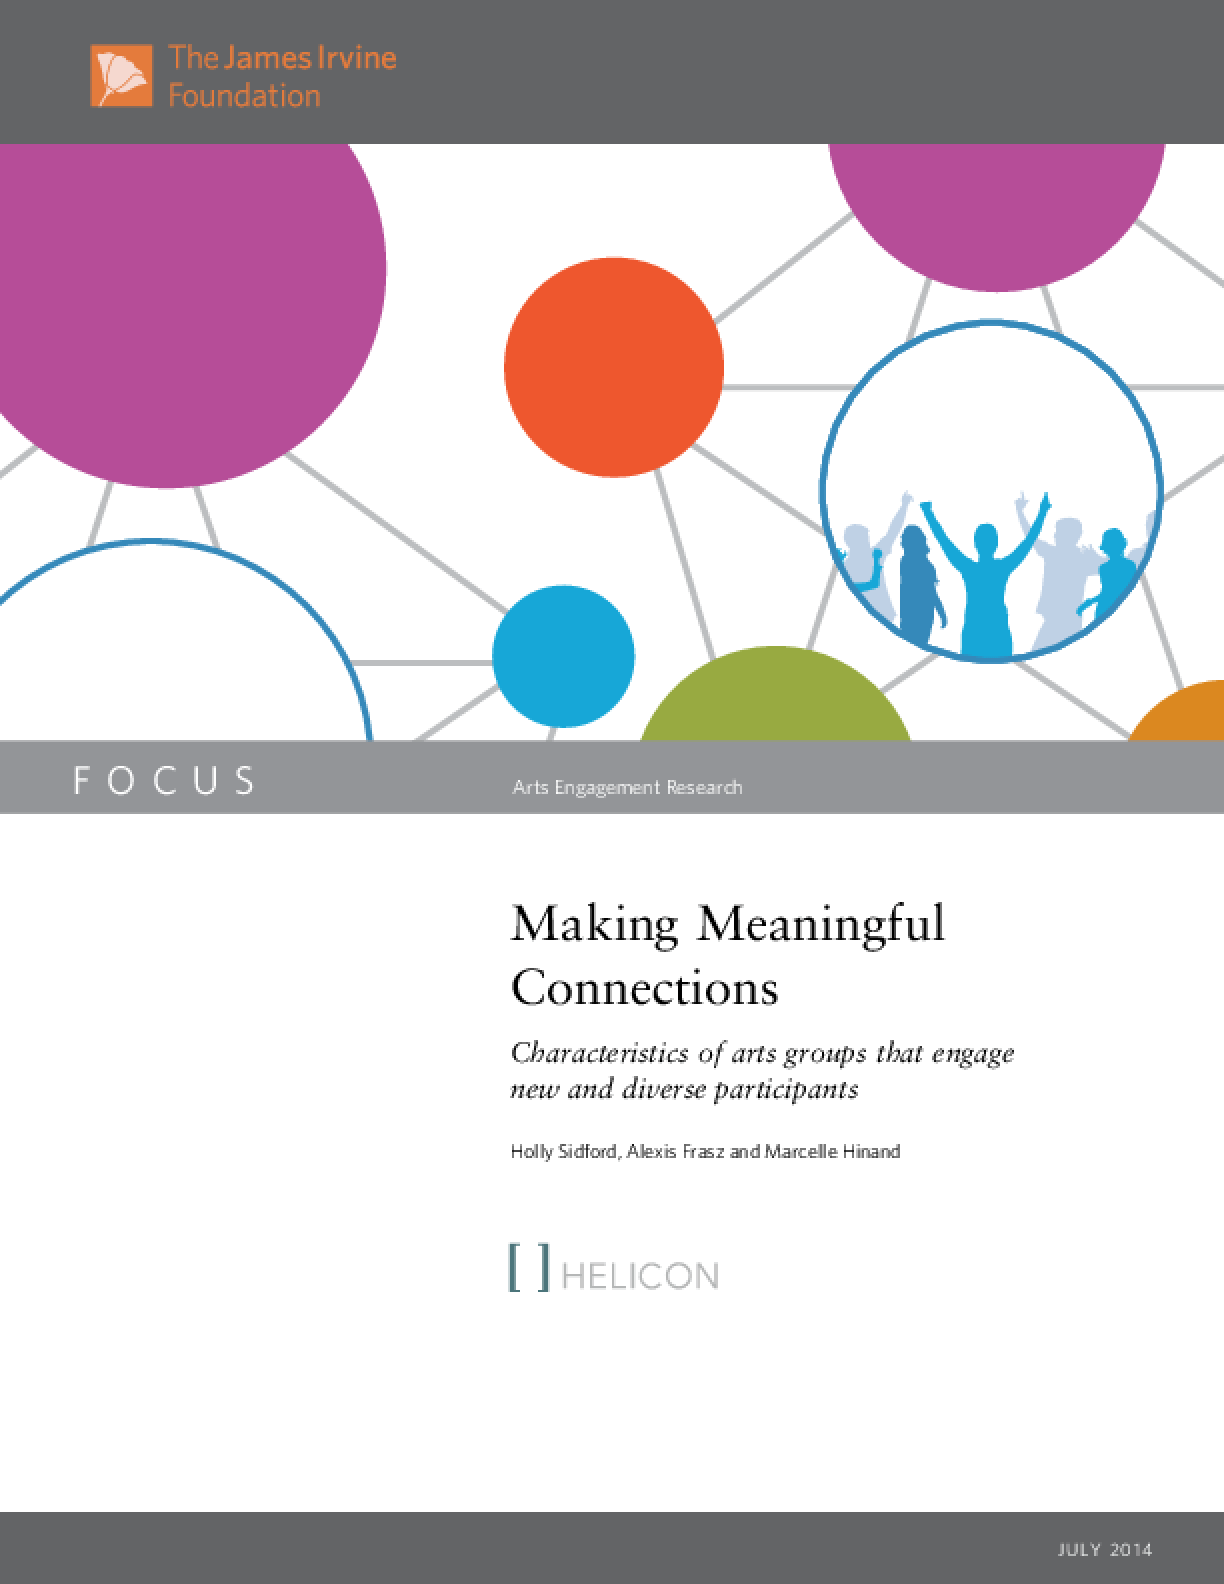 Making Meaningful Connections: Characteristics of Arts Groups that Engage New and Diverse Participants